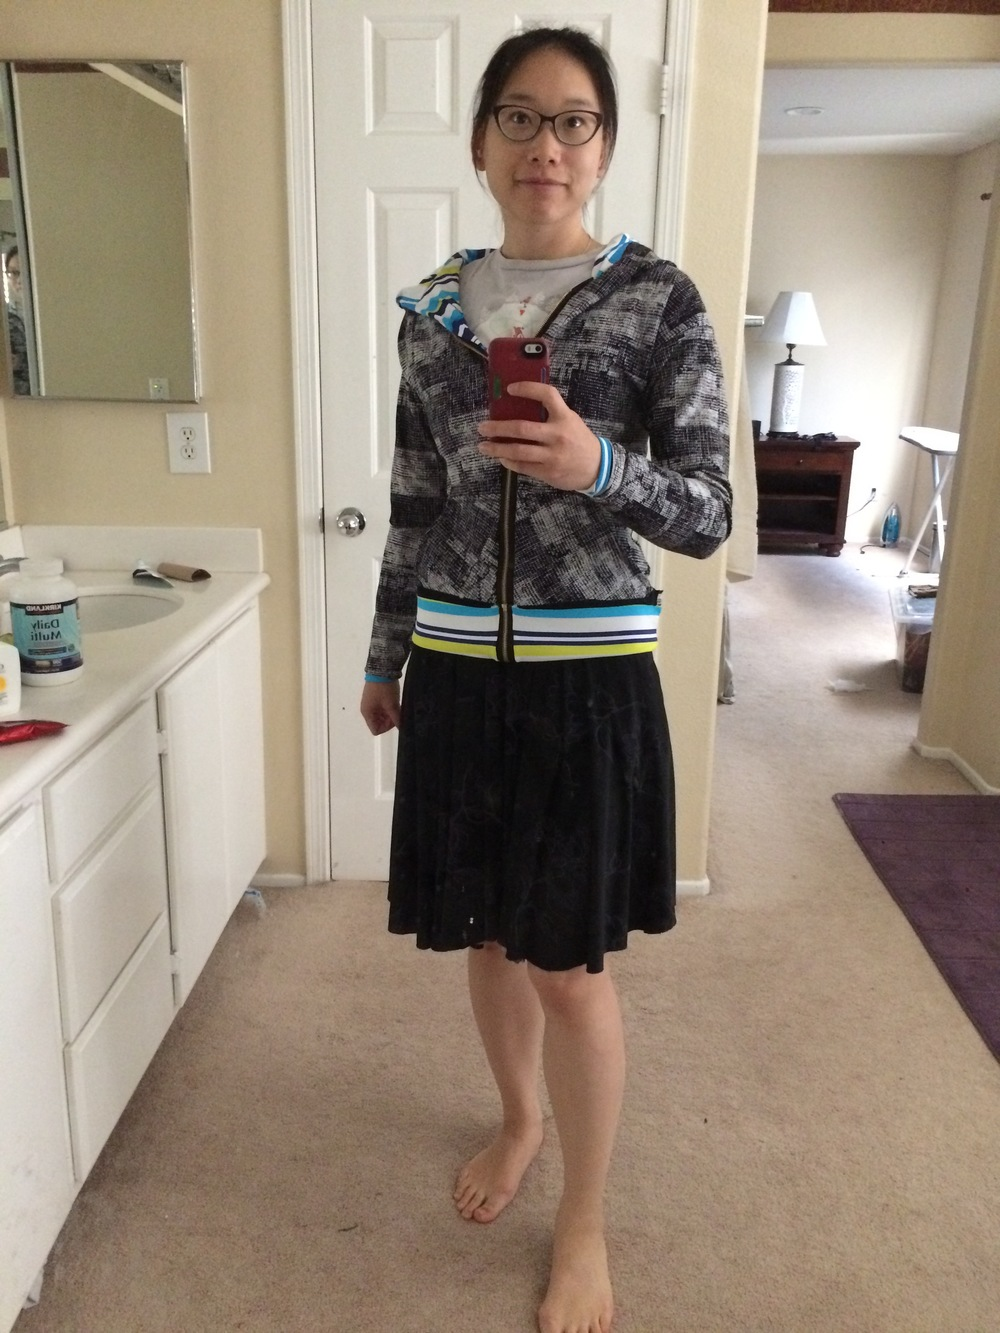 Here I paired the hoodie with the black/gray reversible skirt I showed before.